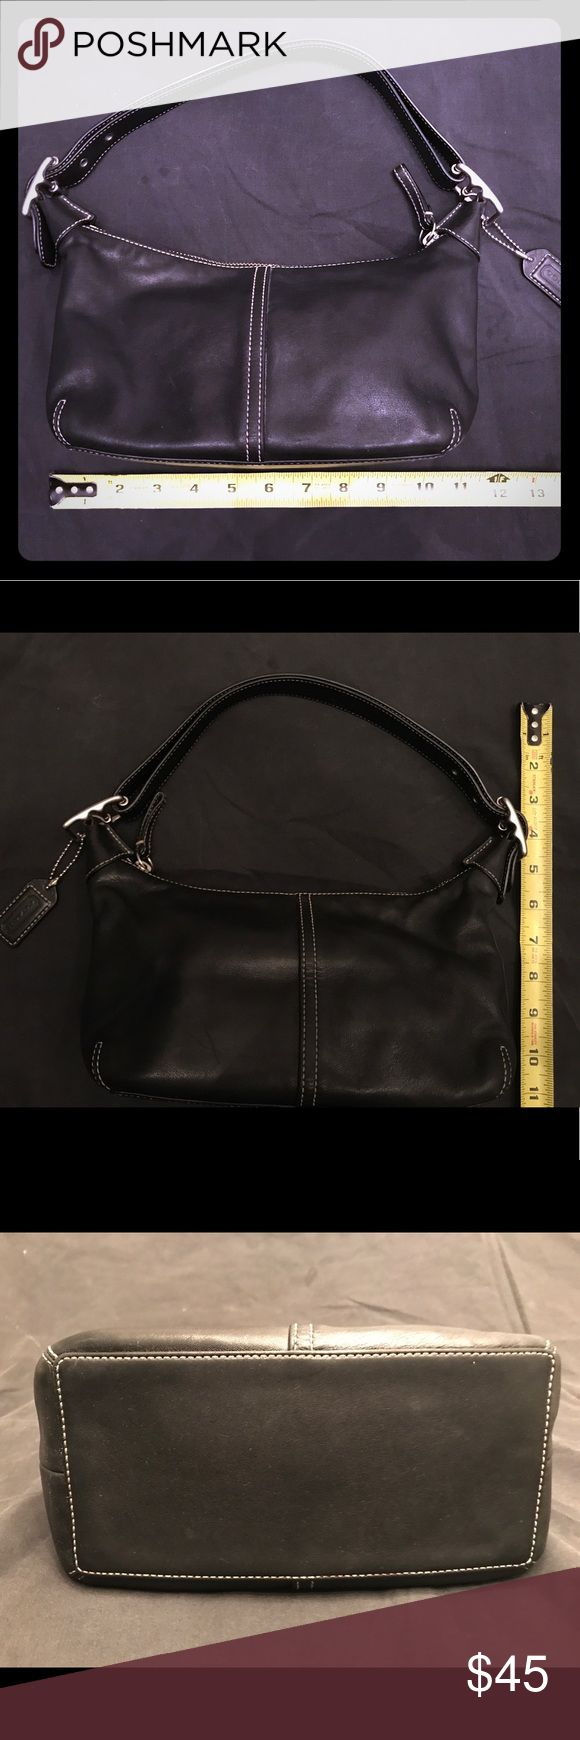 Coach Legacy Small Convertible Hobo Handbag 9564 Coach Legacy Small Convertible Hobo Handbag Purse B061-9564. Smoke Free Home. Coach Bags Hobos